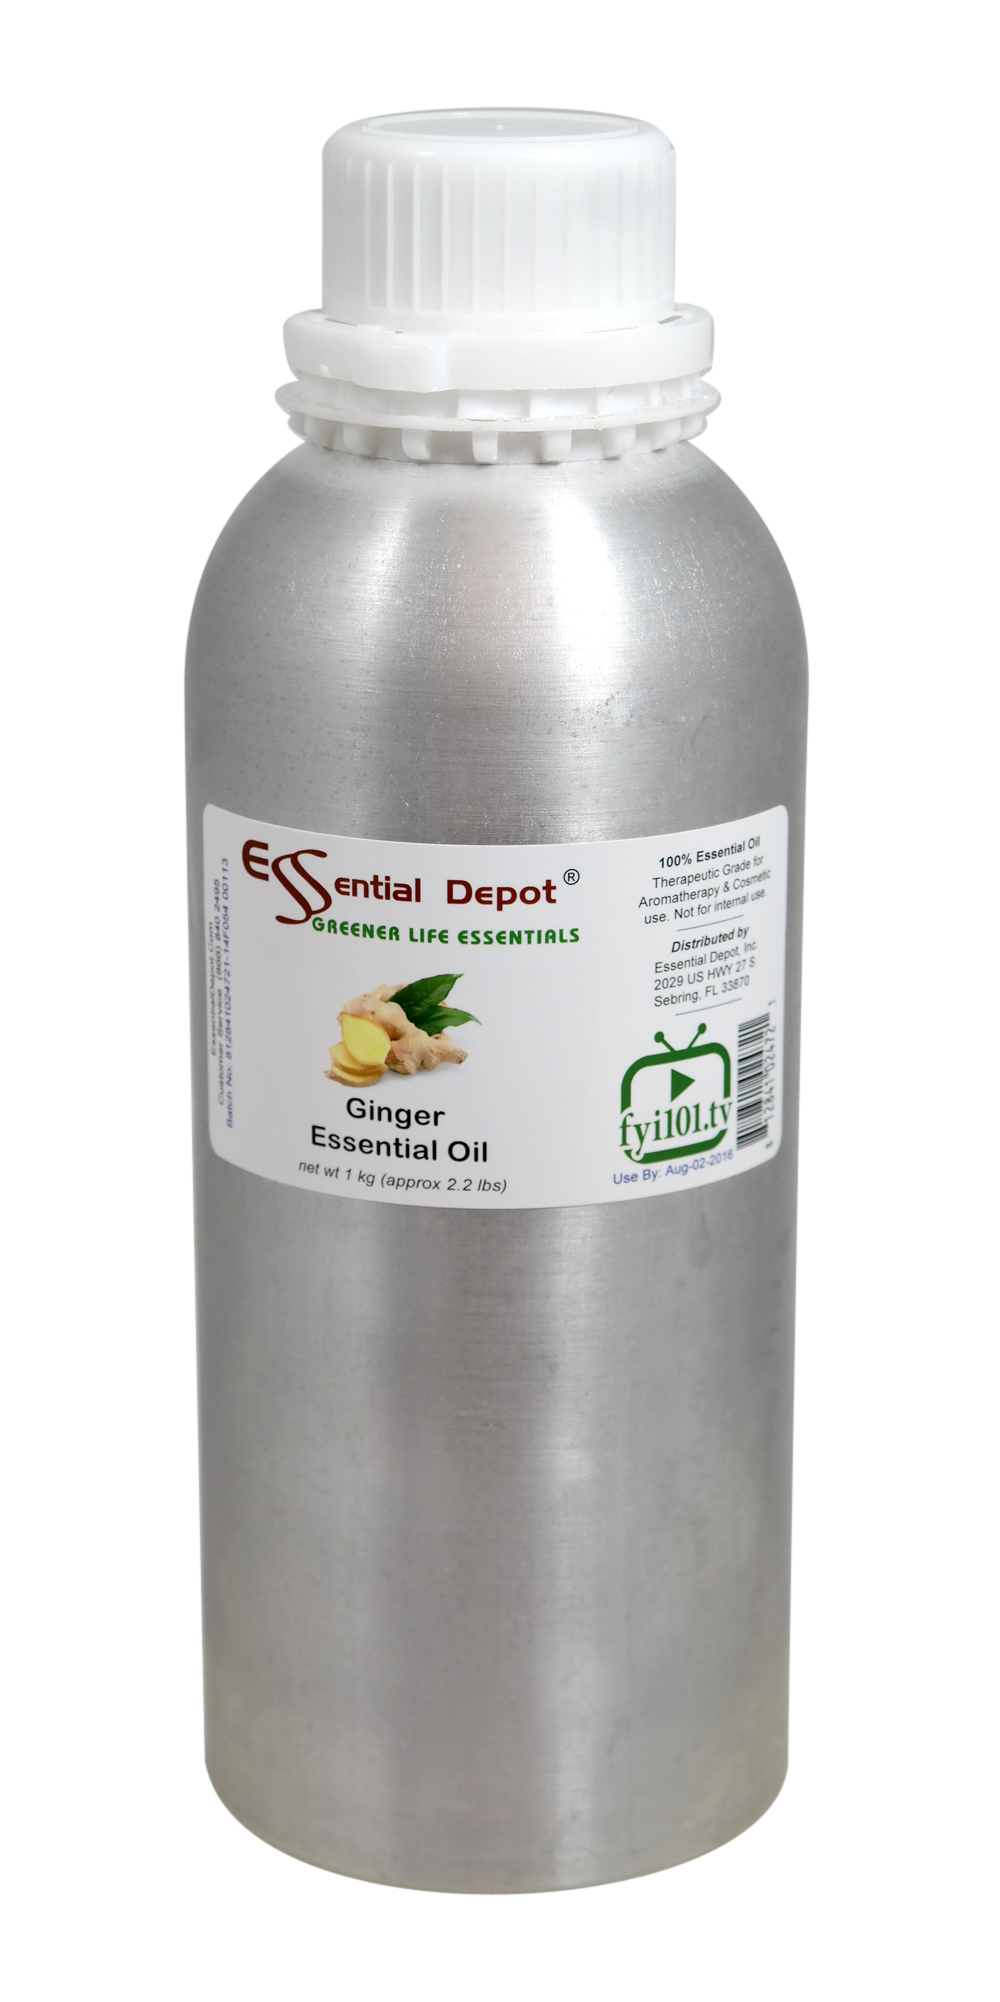 Ginger Essential Oil - 1 kg. - Approx 2.2 lbs. - FREE US SHIPPING